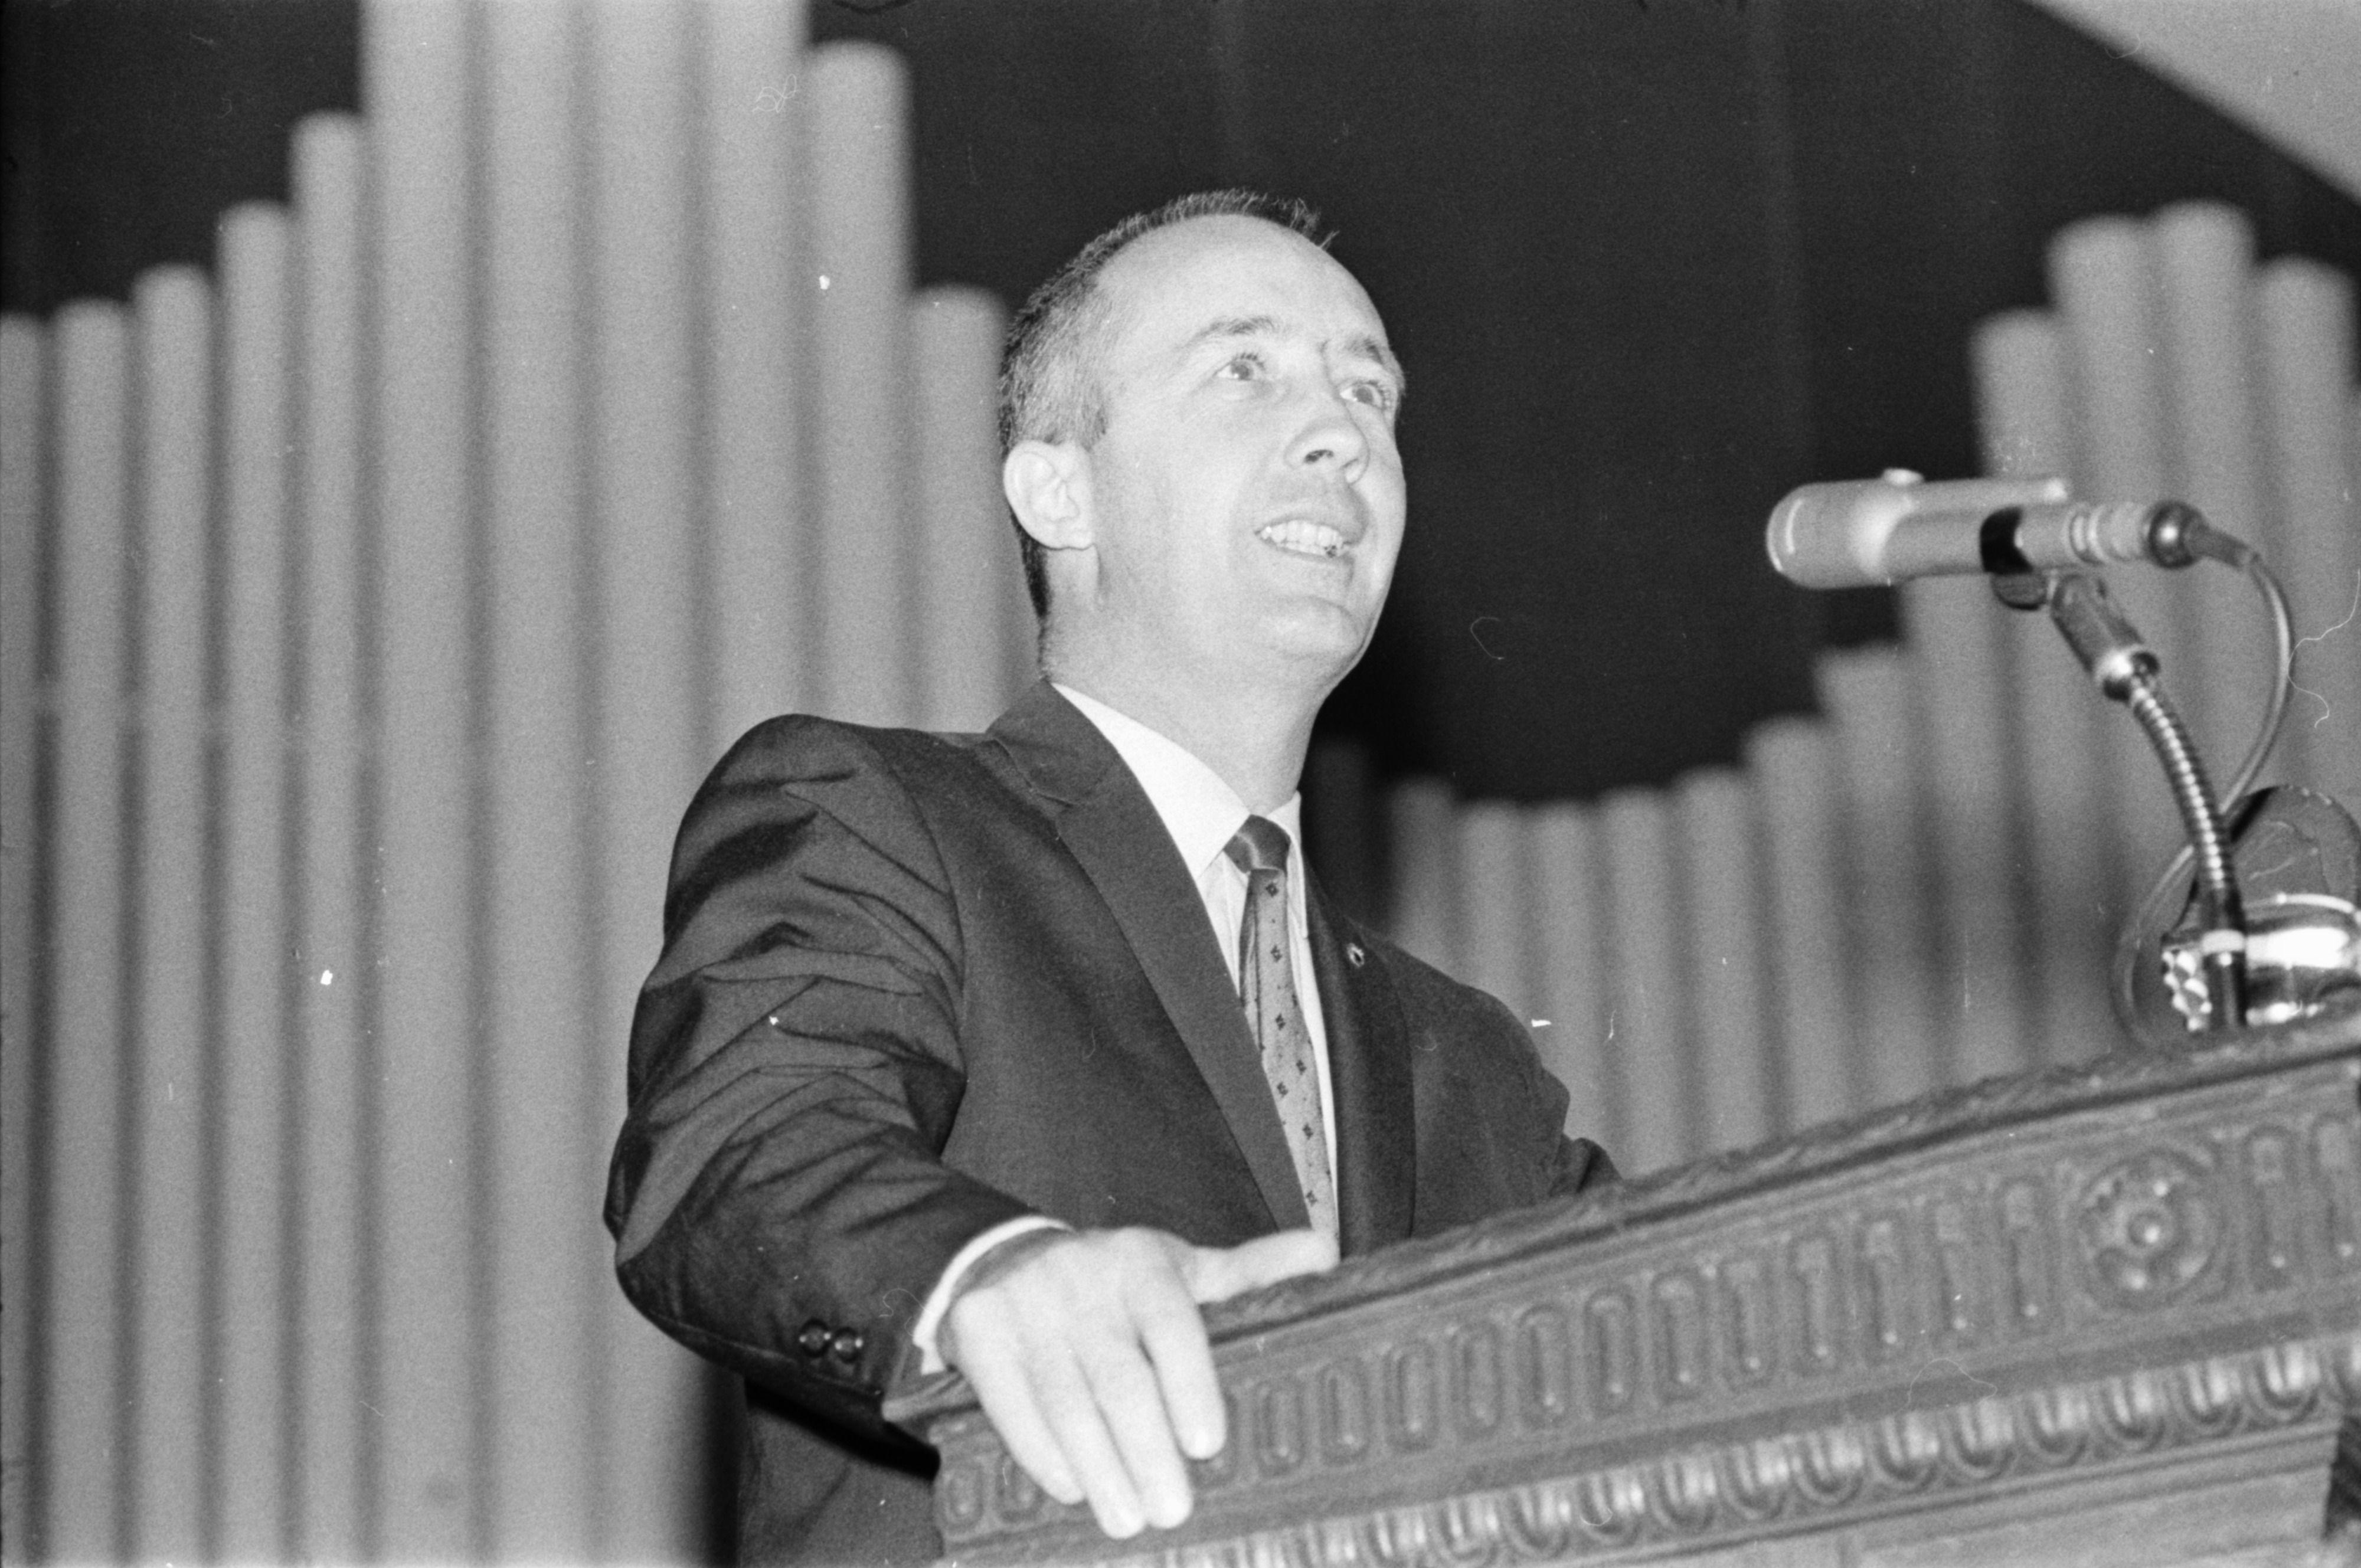 Astronaut Col. James A. McDivitt at Hill Auditorium, April 1969 image